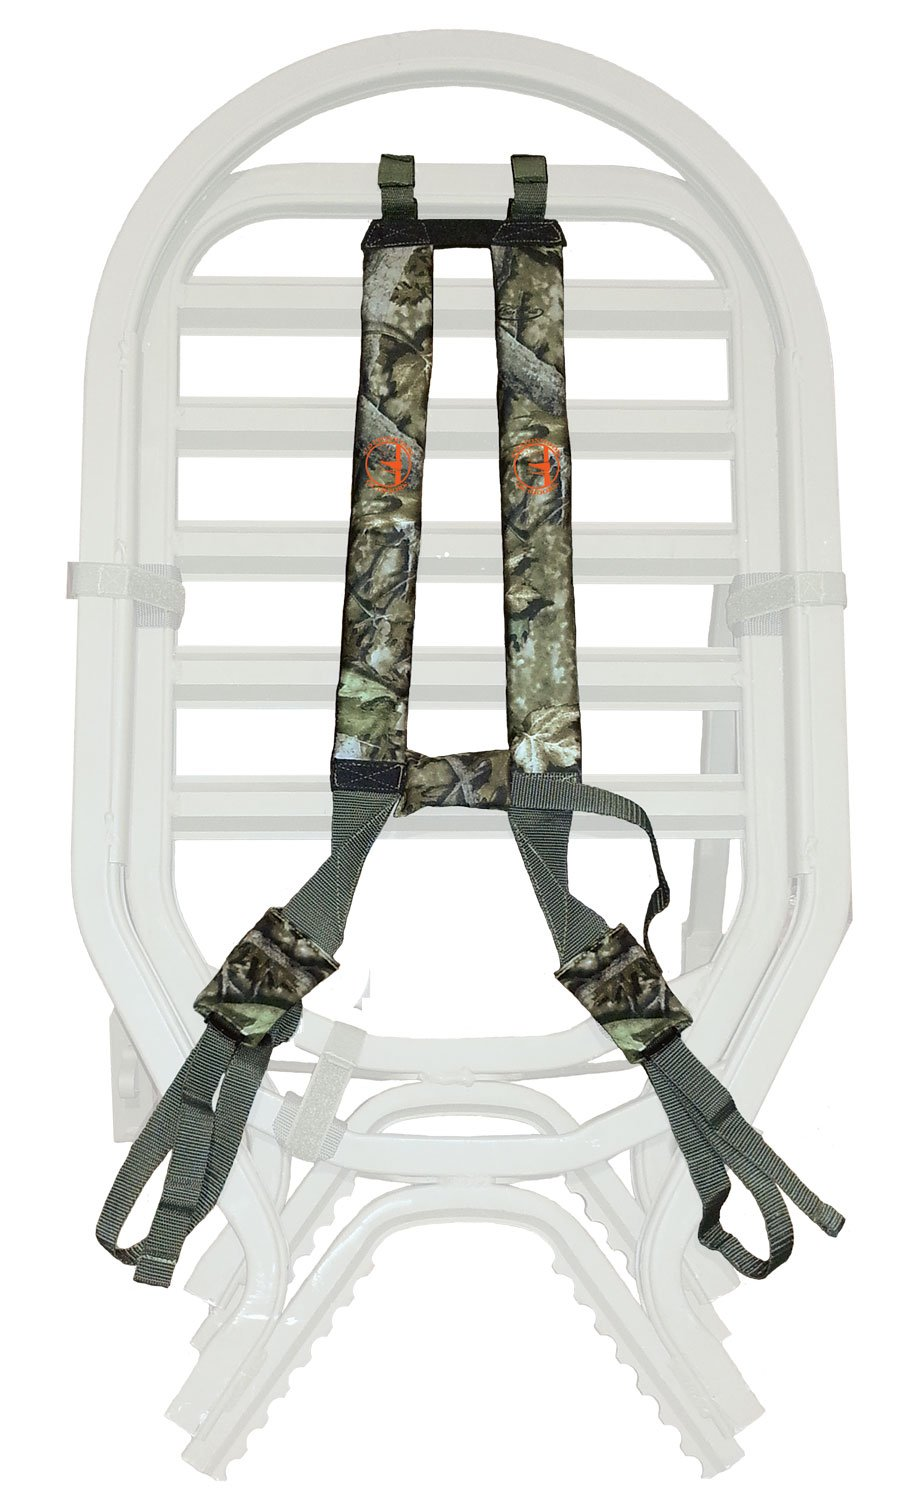 COTTONWOOD OUTDOORS Treestand Resurrection, Transport Strap System, Clear Cutt Camo